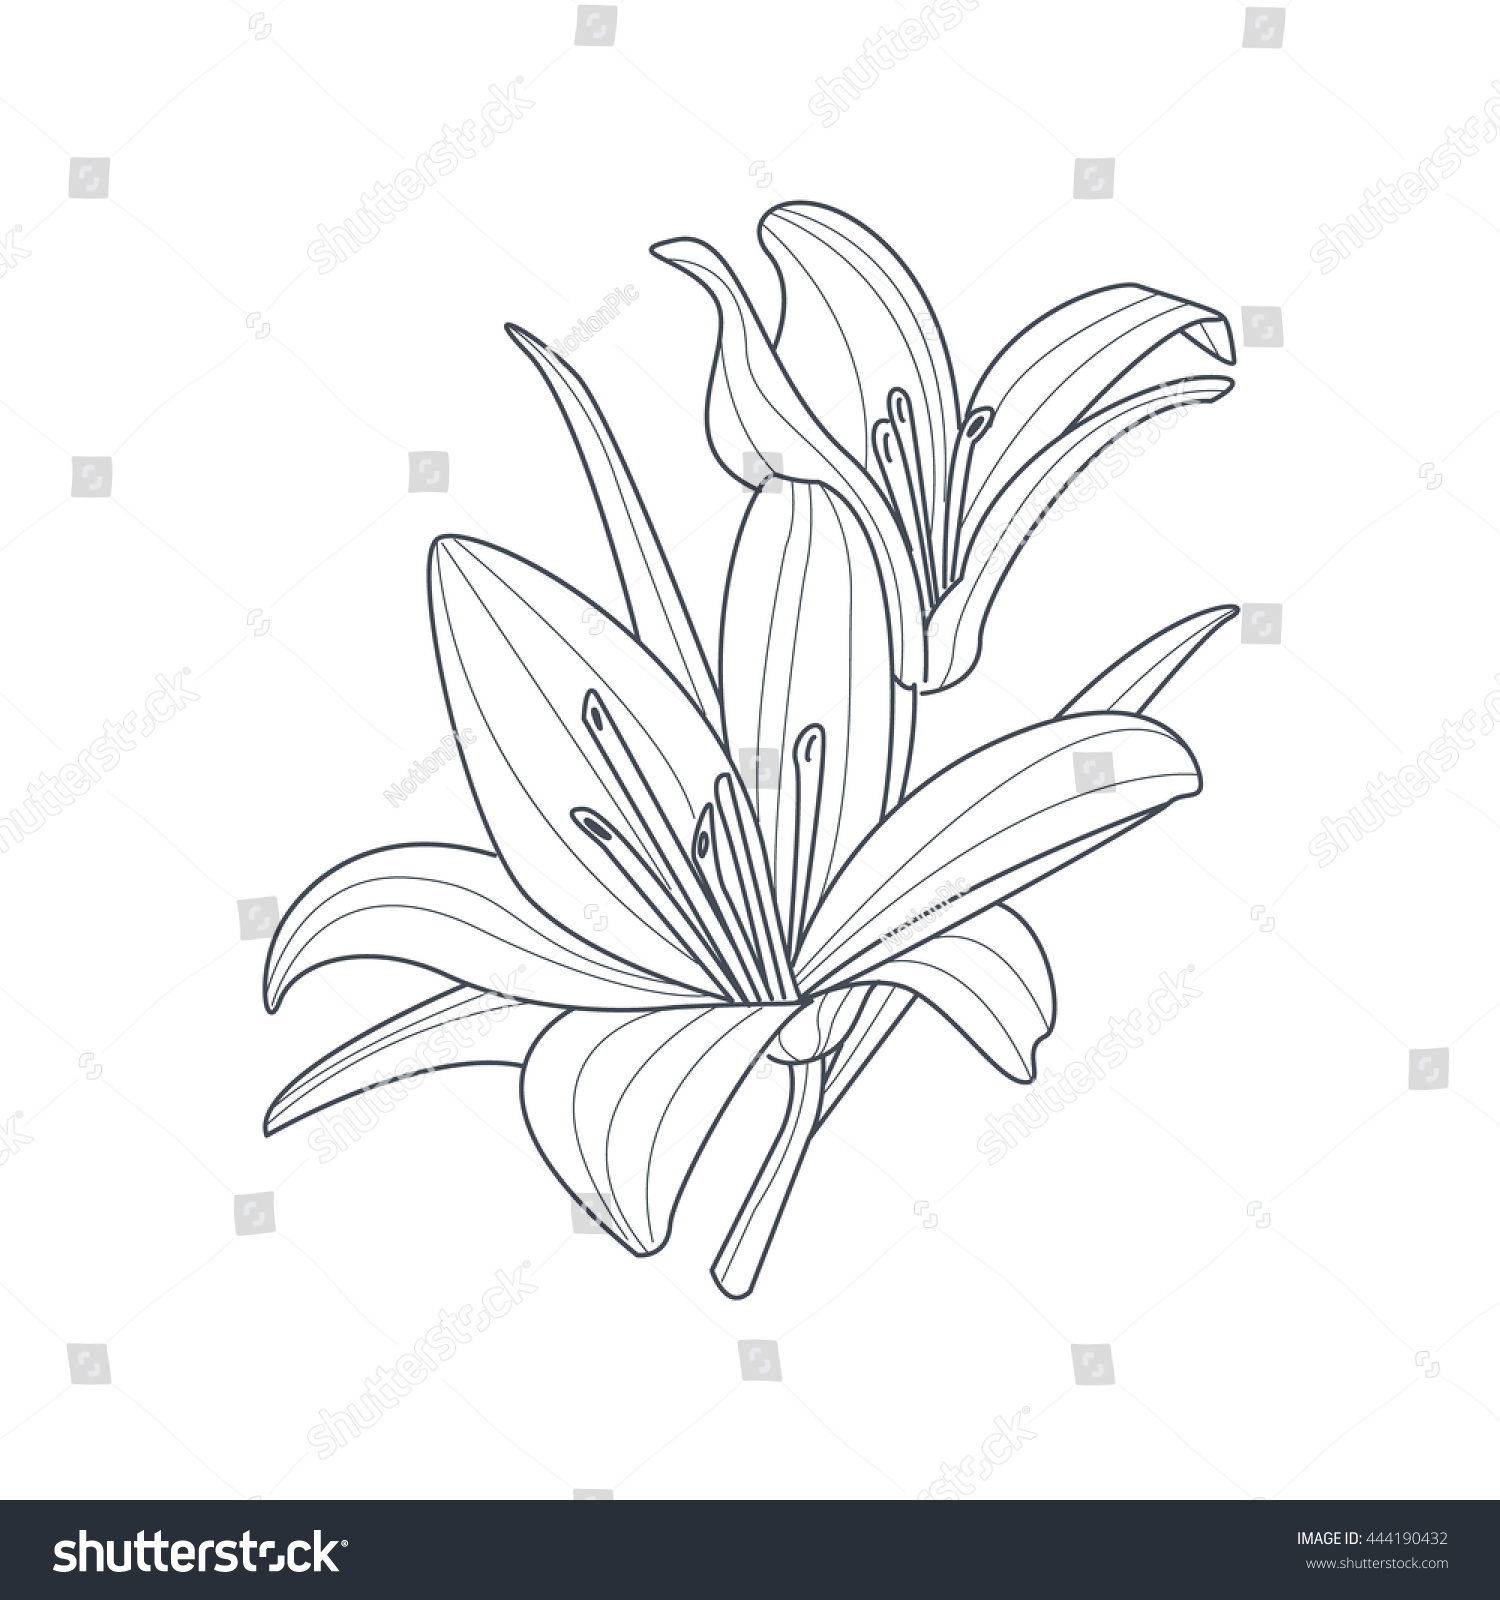 Similar Images Stock Photos Vectors Of Two Lilies Flower